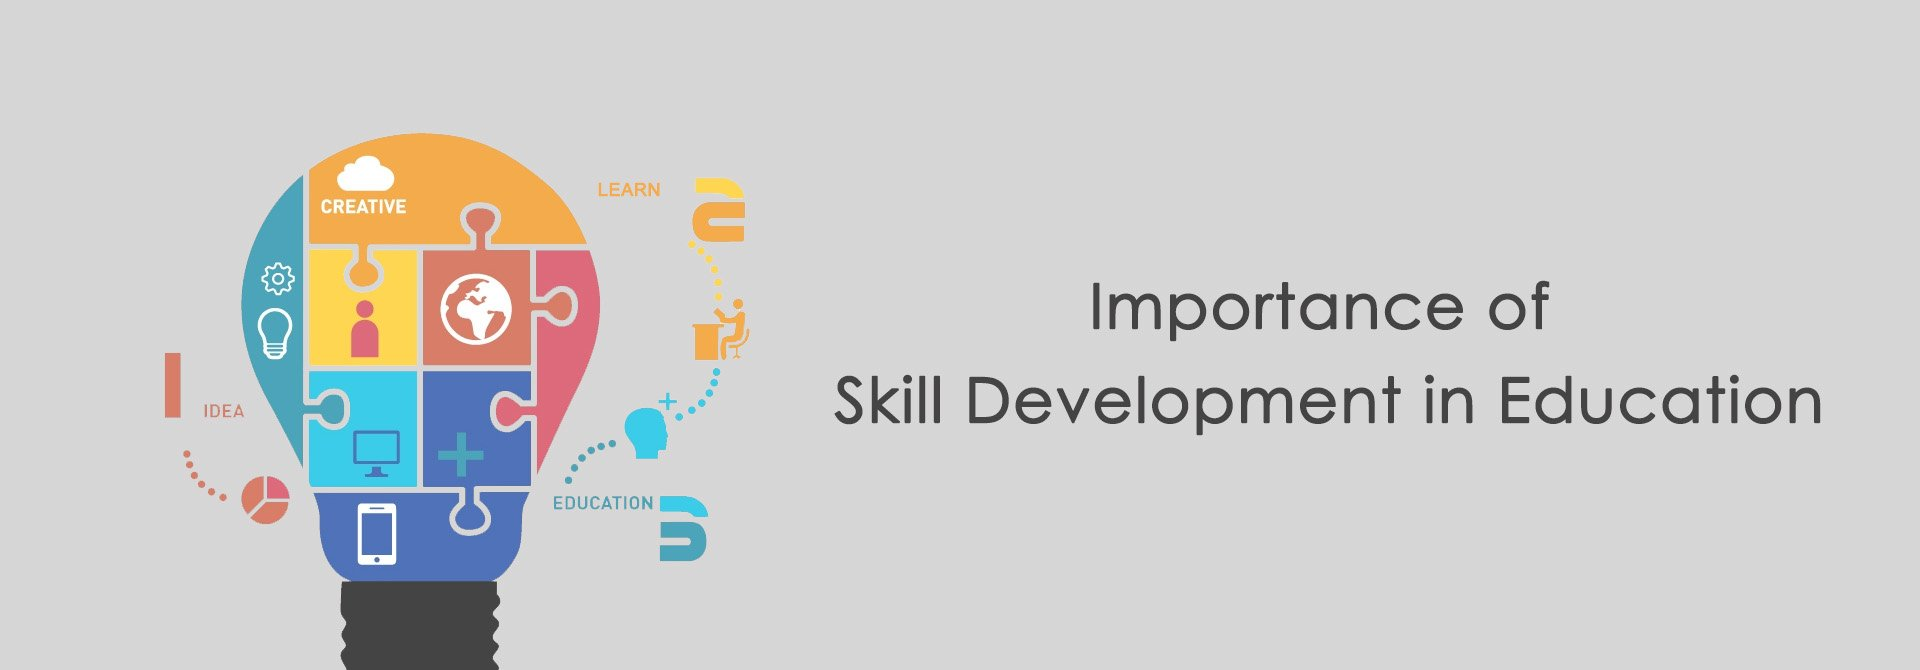 Importance of Skill Development in Education-1